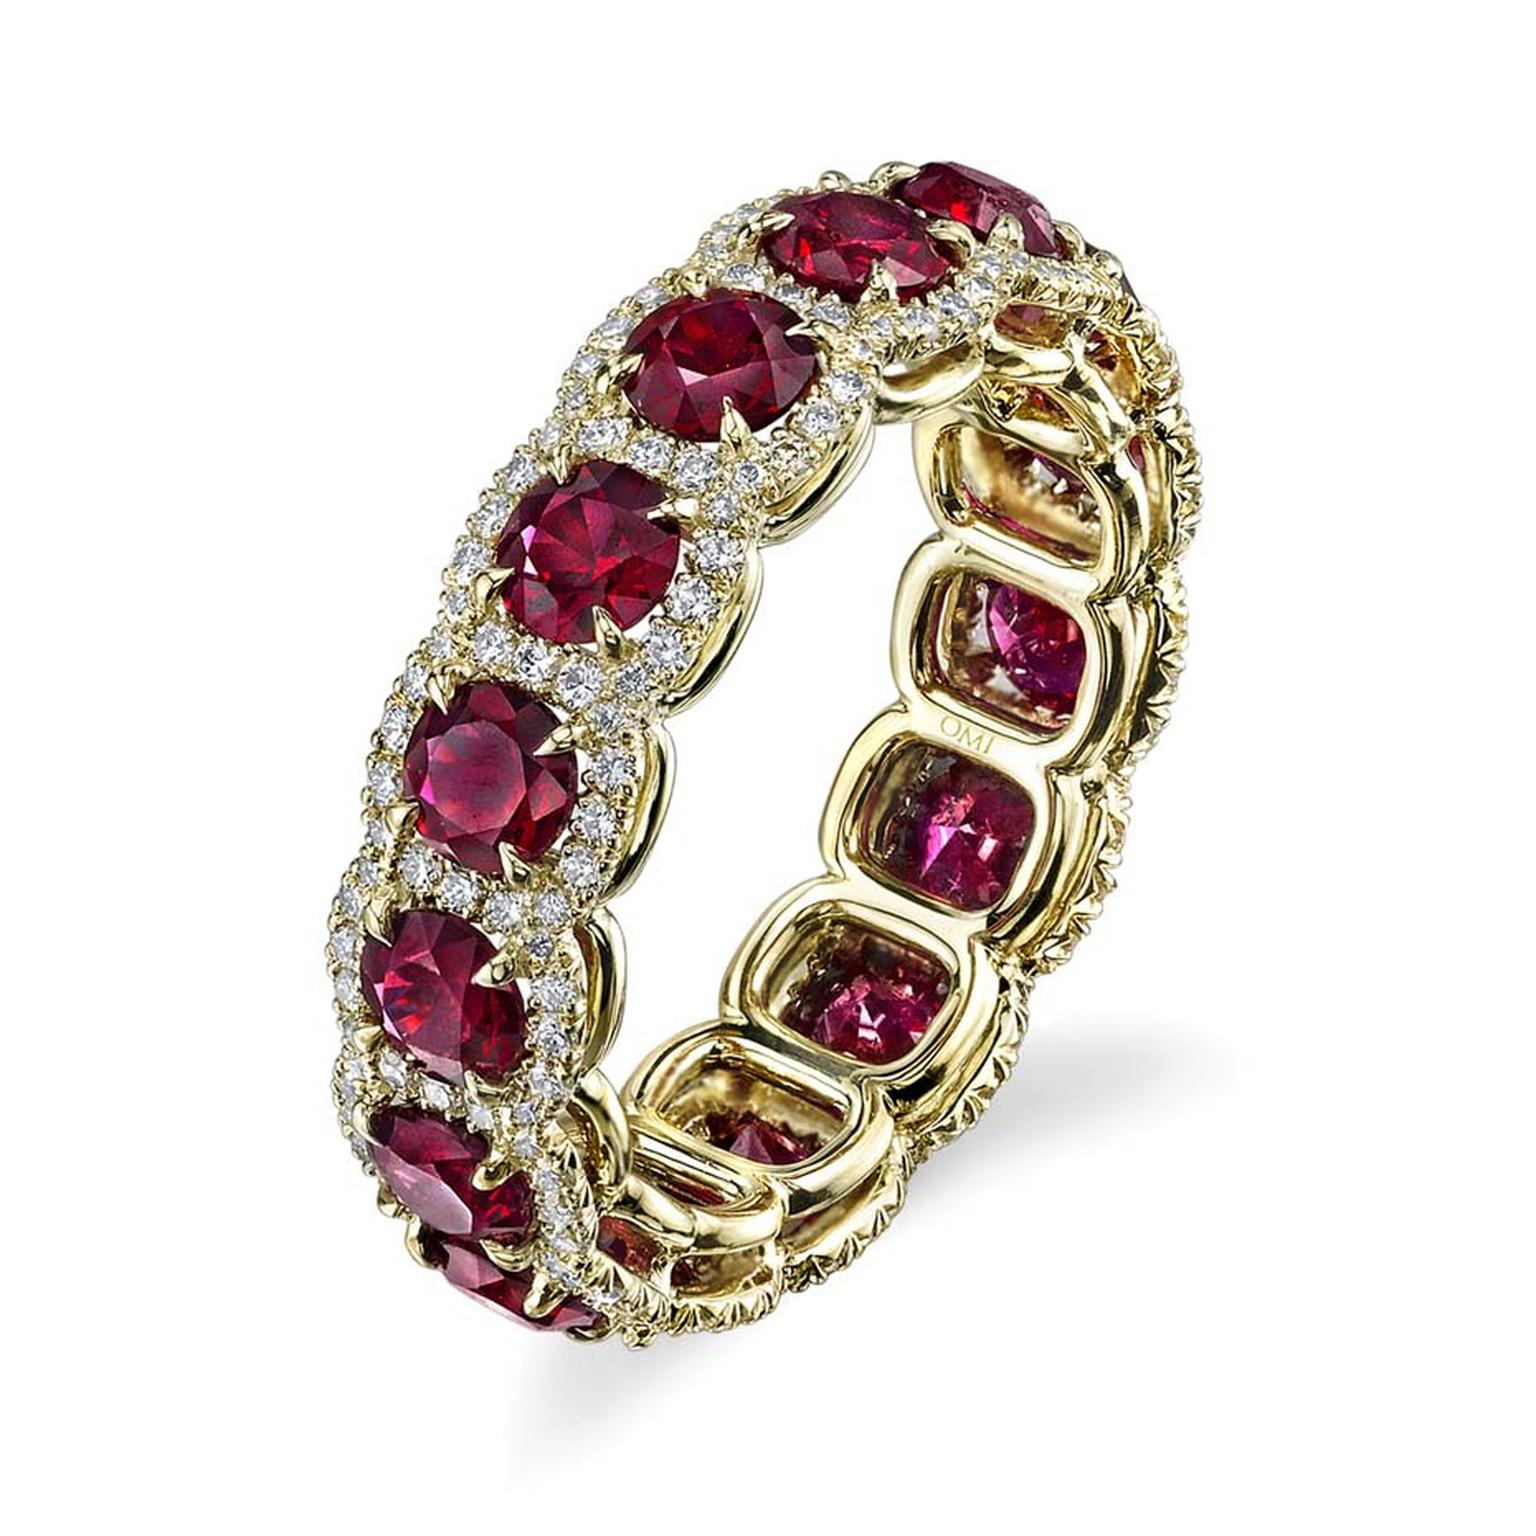 Omi Privé ruby and diamond eternity wedding band